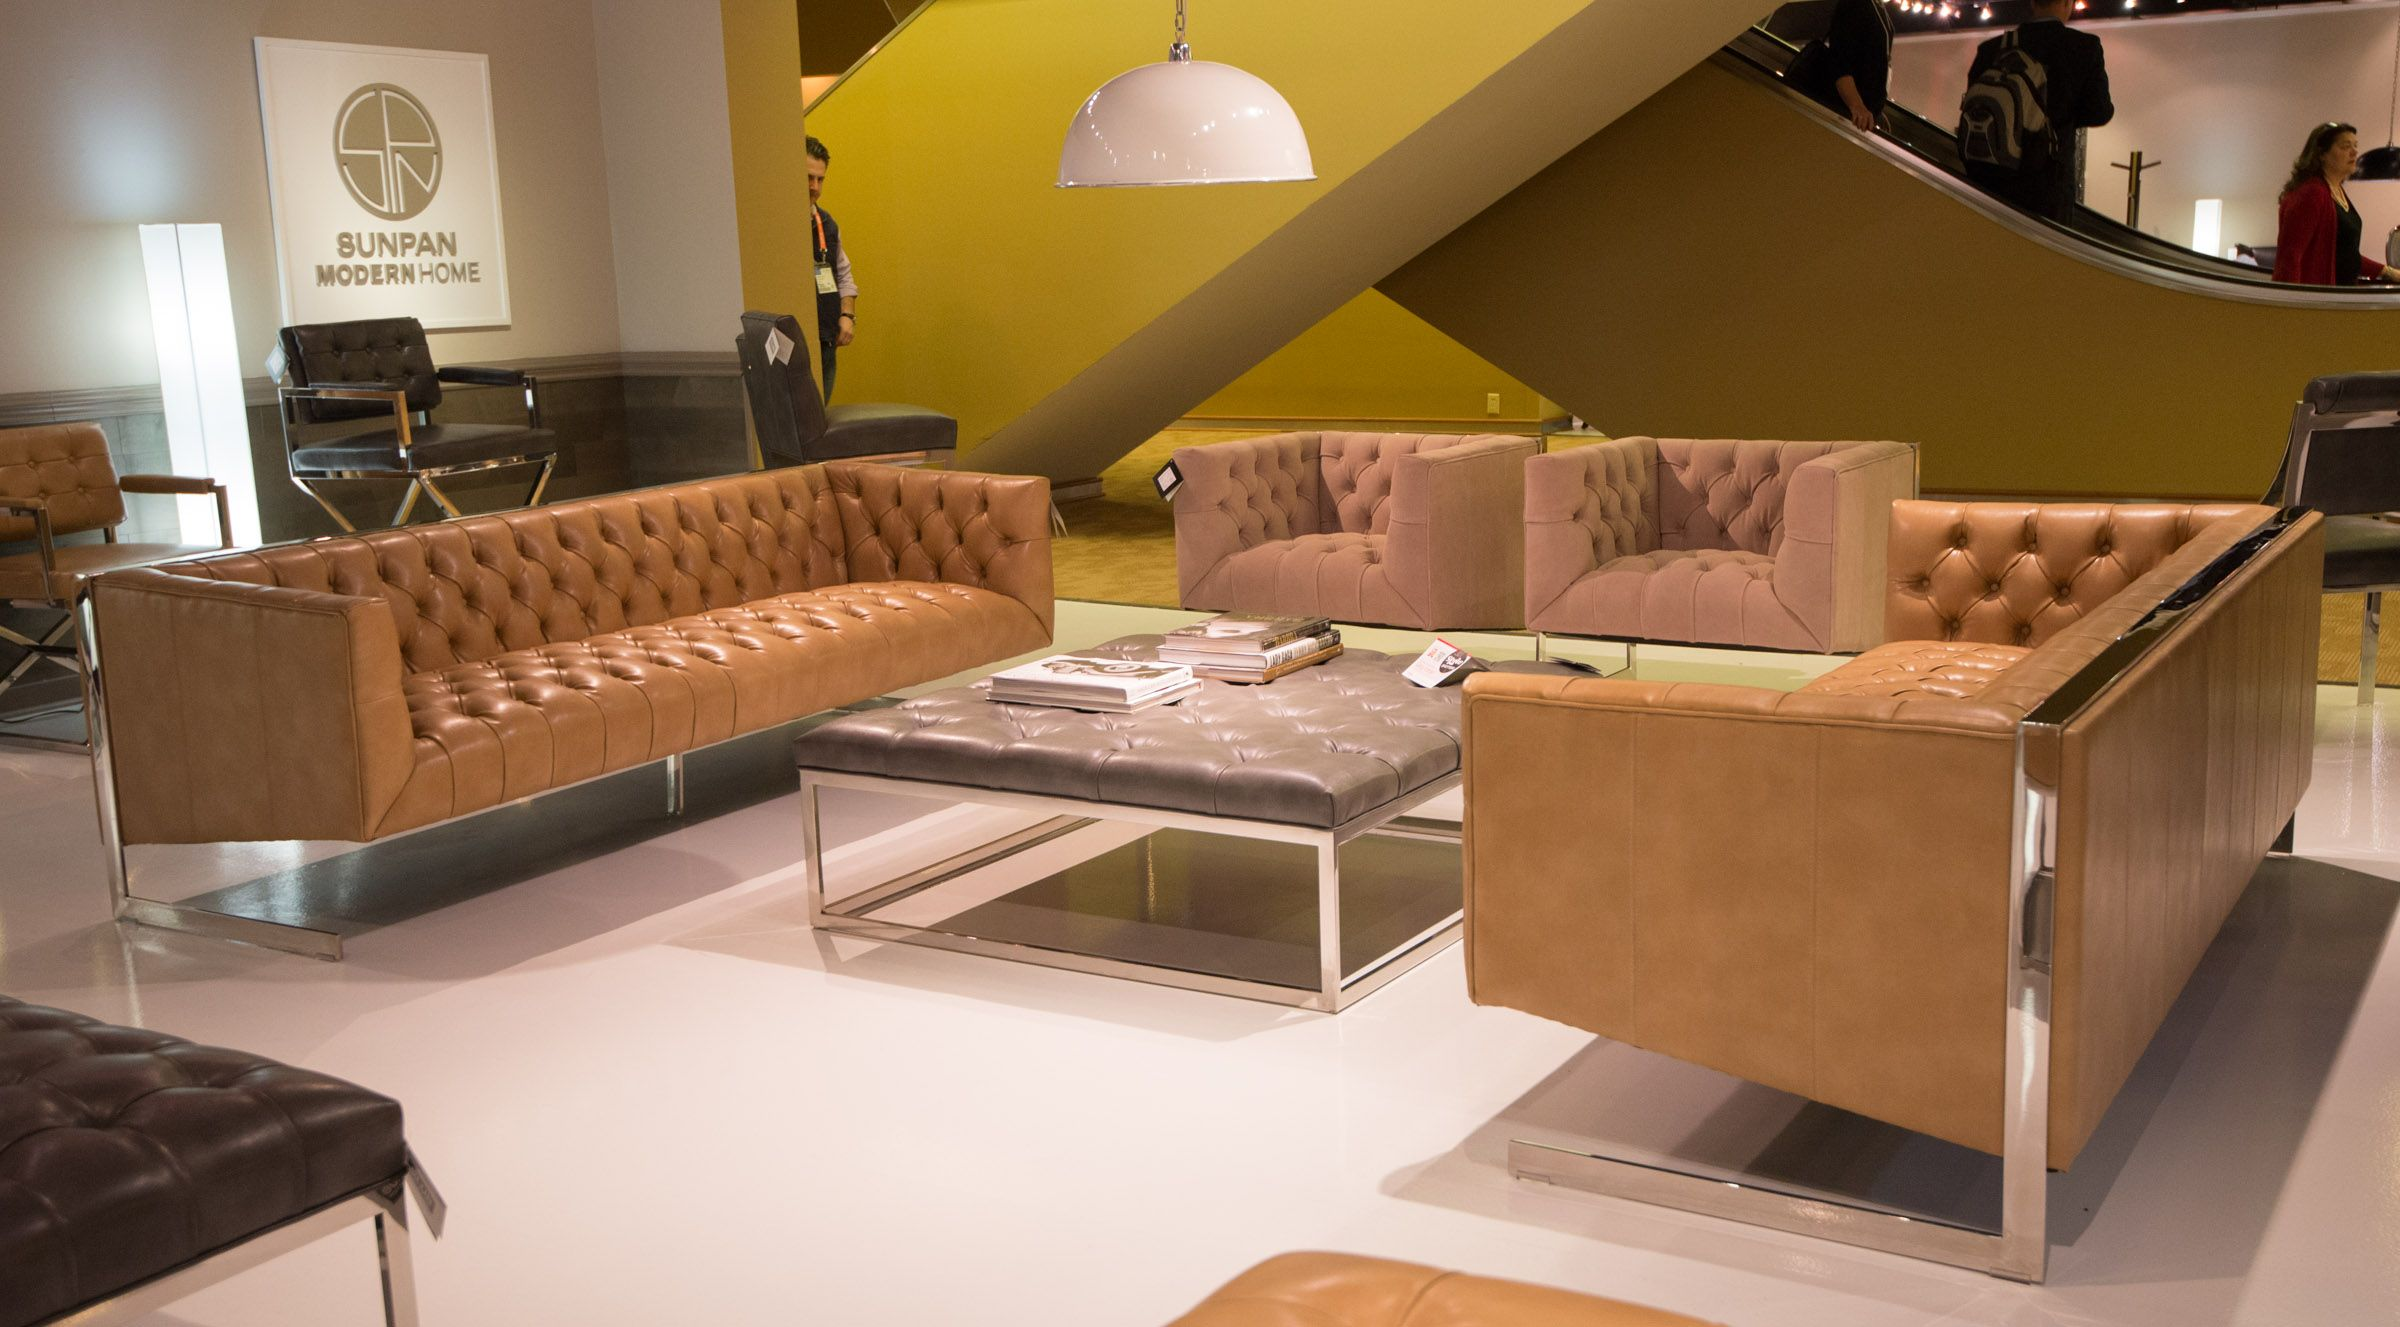 Viper Sofa And Viper Armchairs - Pilot Coffee Table